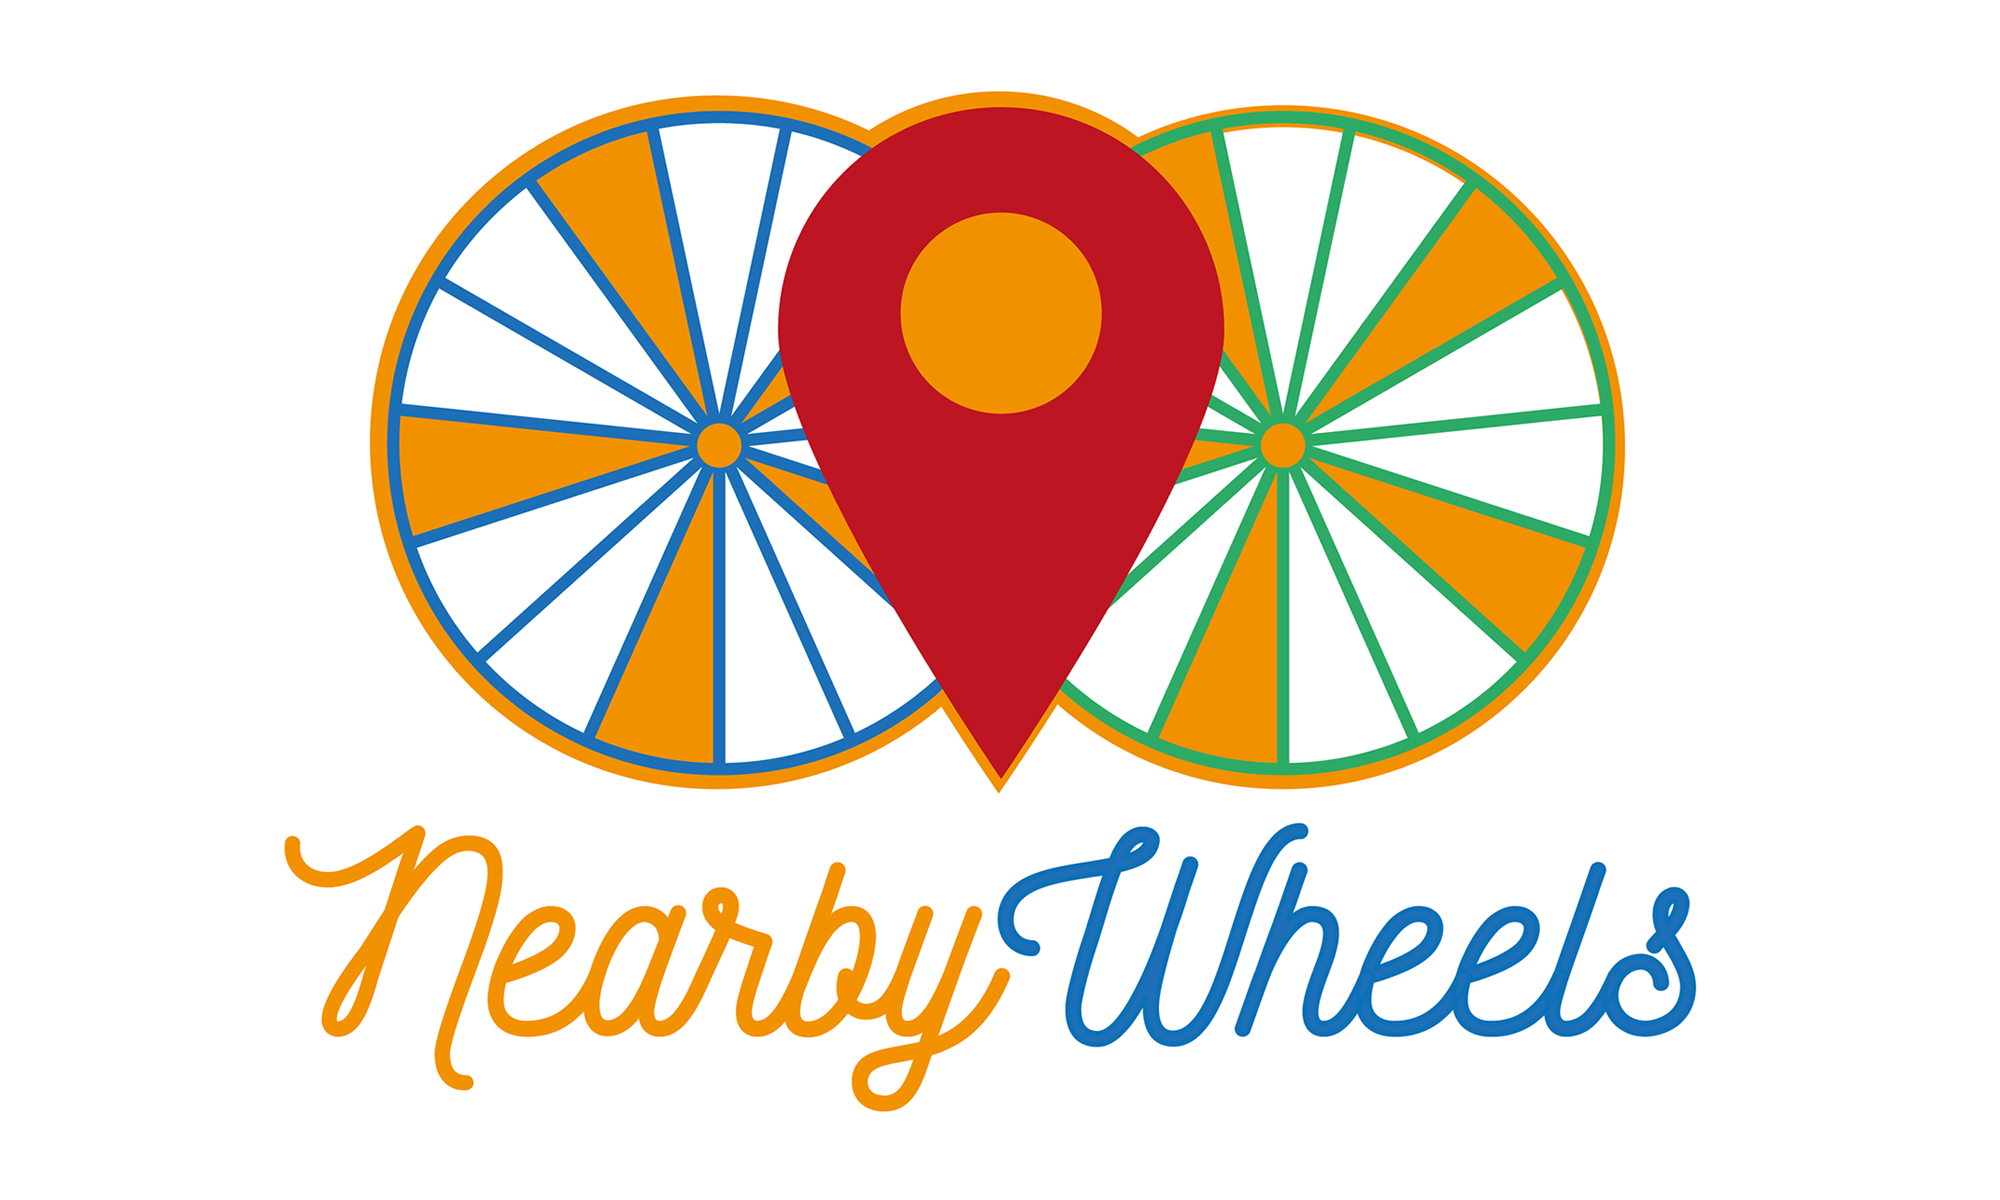 Nearby Wheels